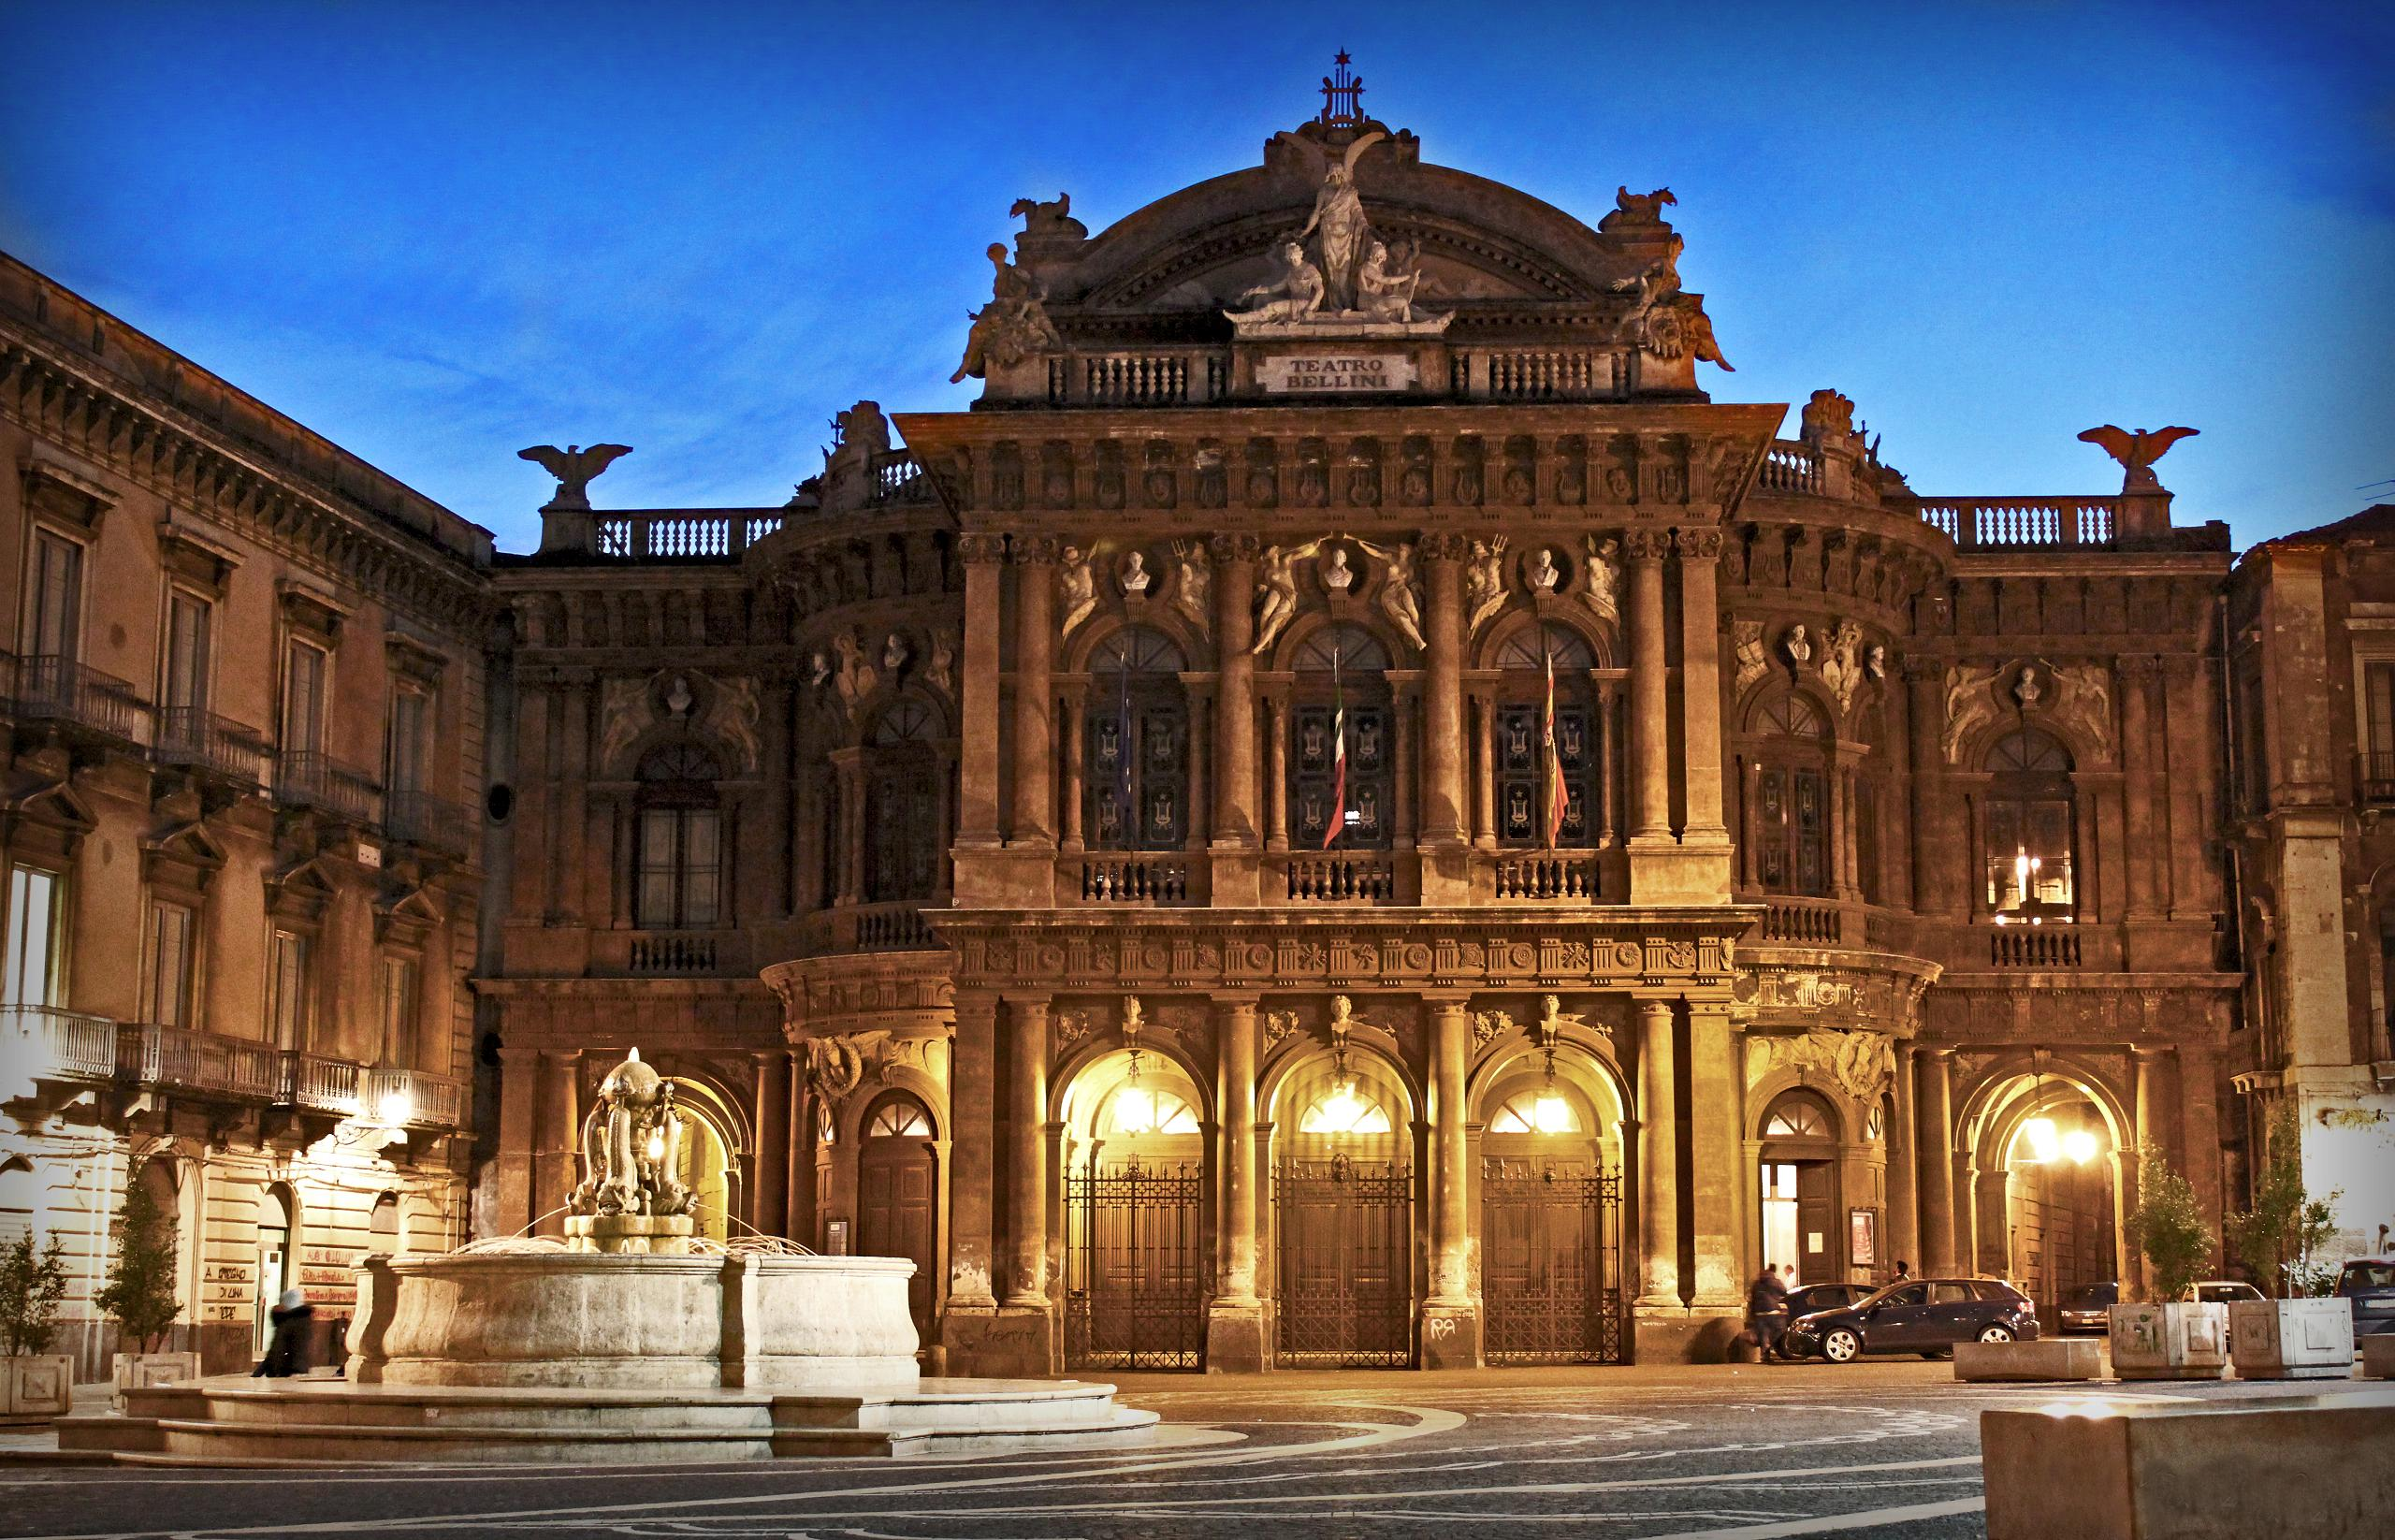 Tragedy: the music stops at Teatro Bellini